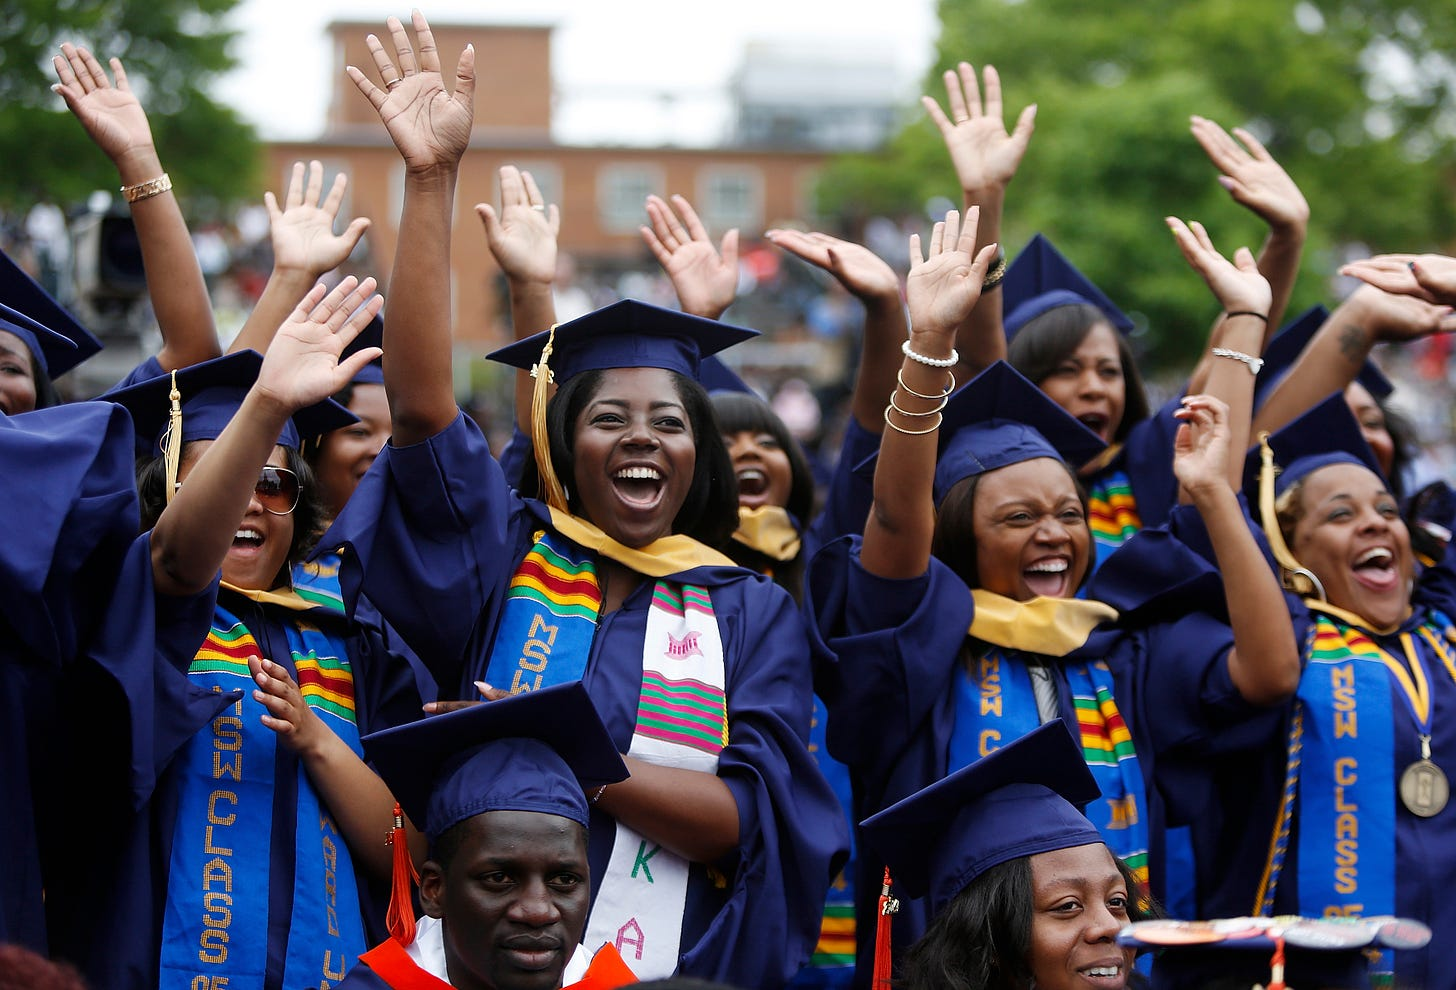 5.2 Comparative Education: Are you able to discuss the development of  higher education in Africa? – Afrominds